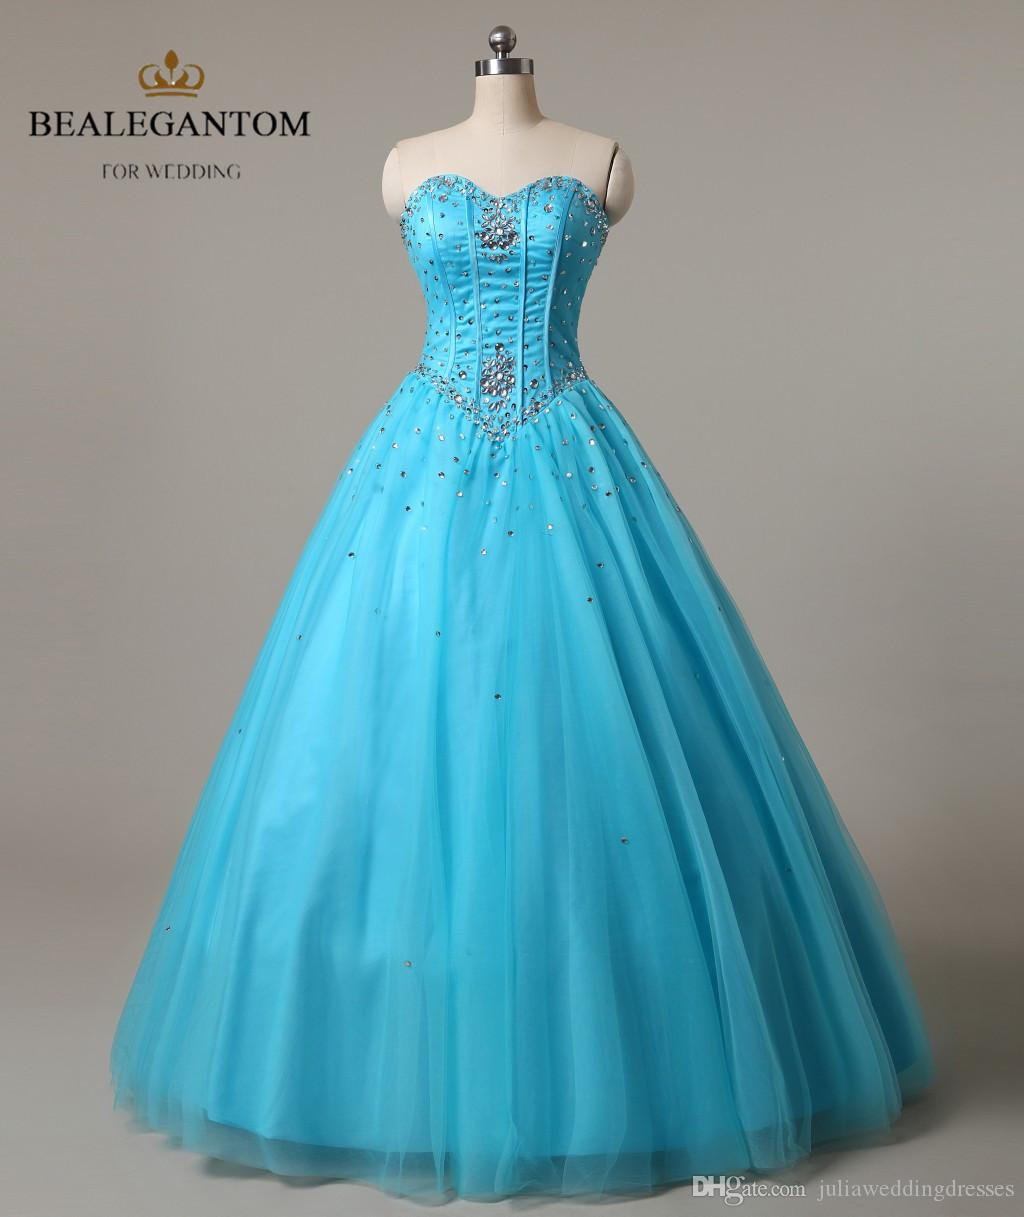 b0e835bee4c Bealegantom Fashionable Cheap Quinceanera Dresses 2018 Ball Gown With Beaded  Crystal Lace Up Sweet 16 Dresses In Stock QA522 Long Dress 2015 Quinceanera  ...